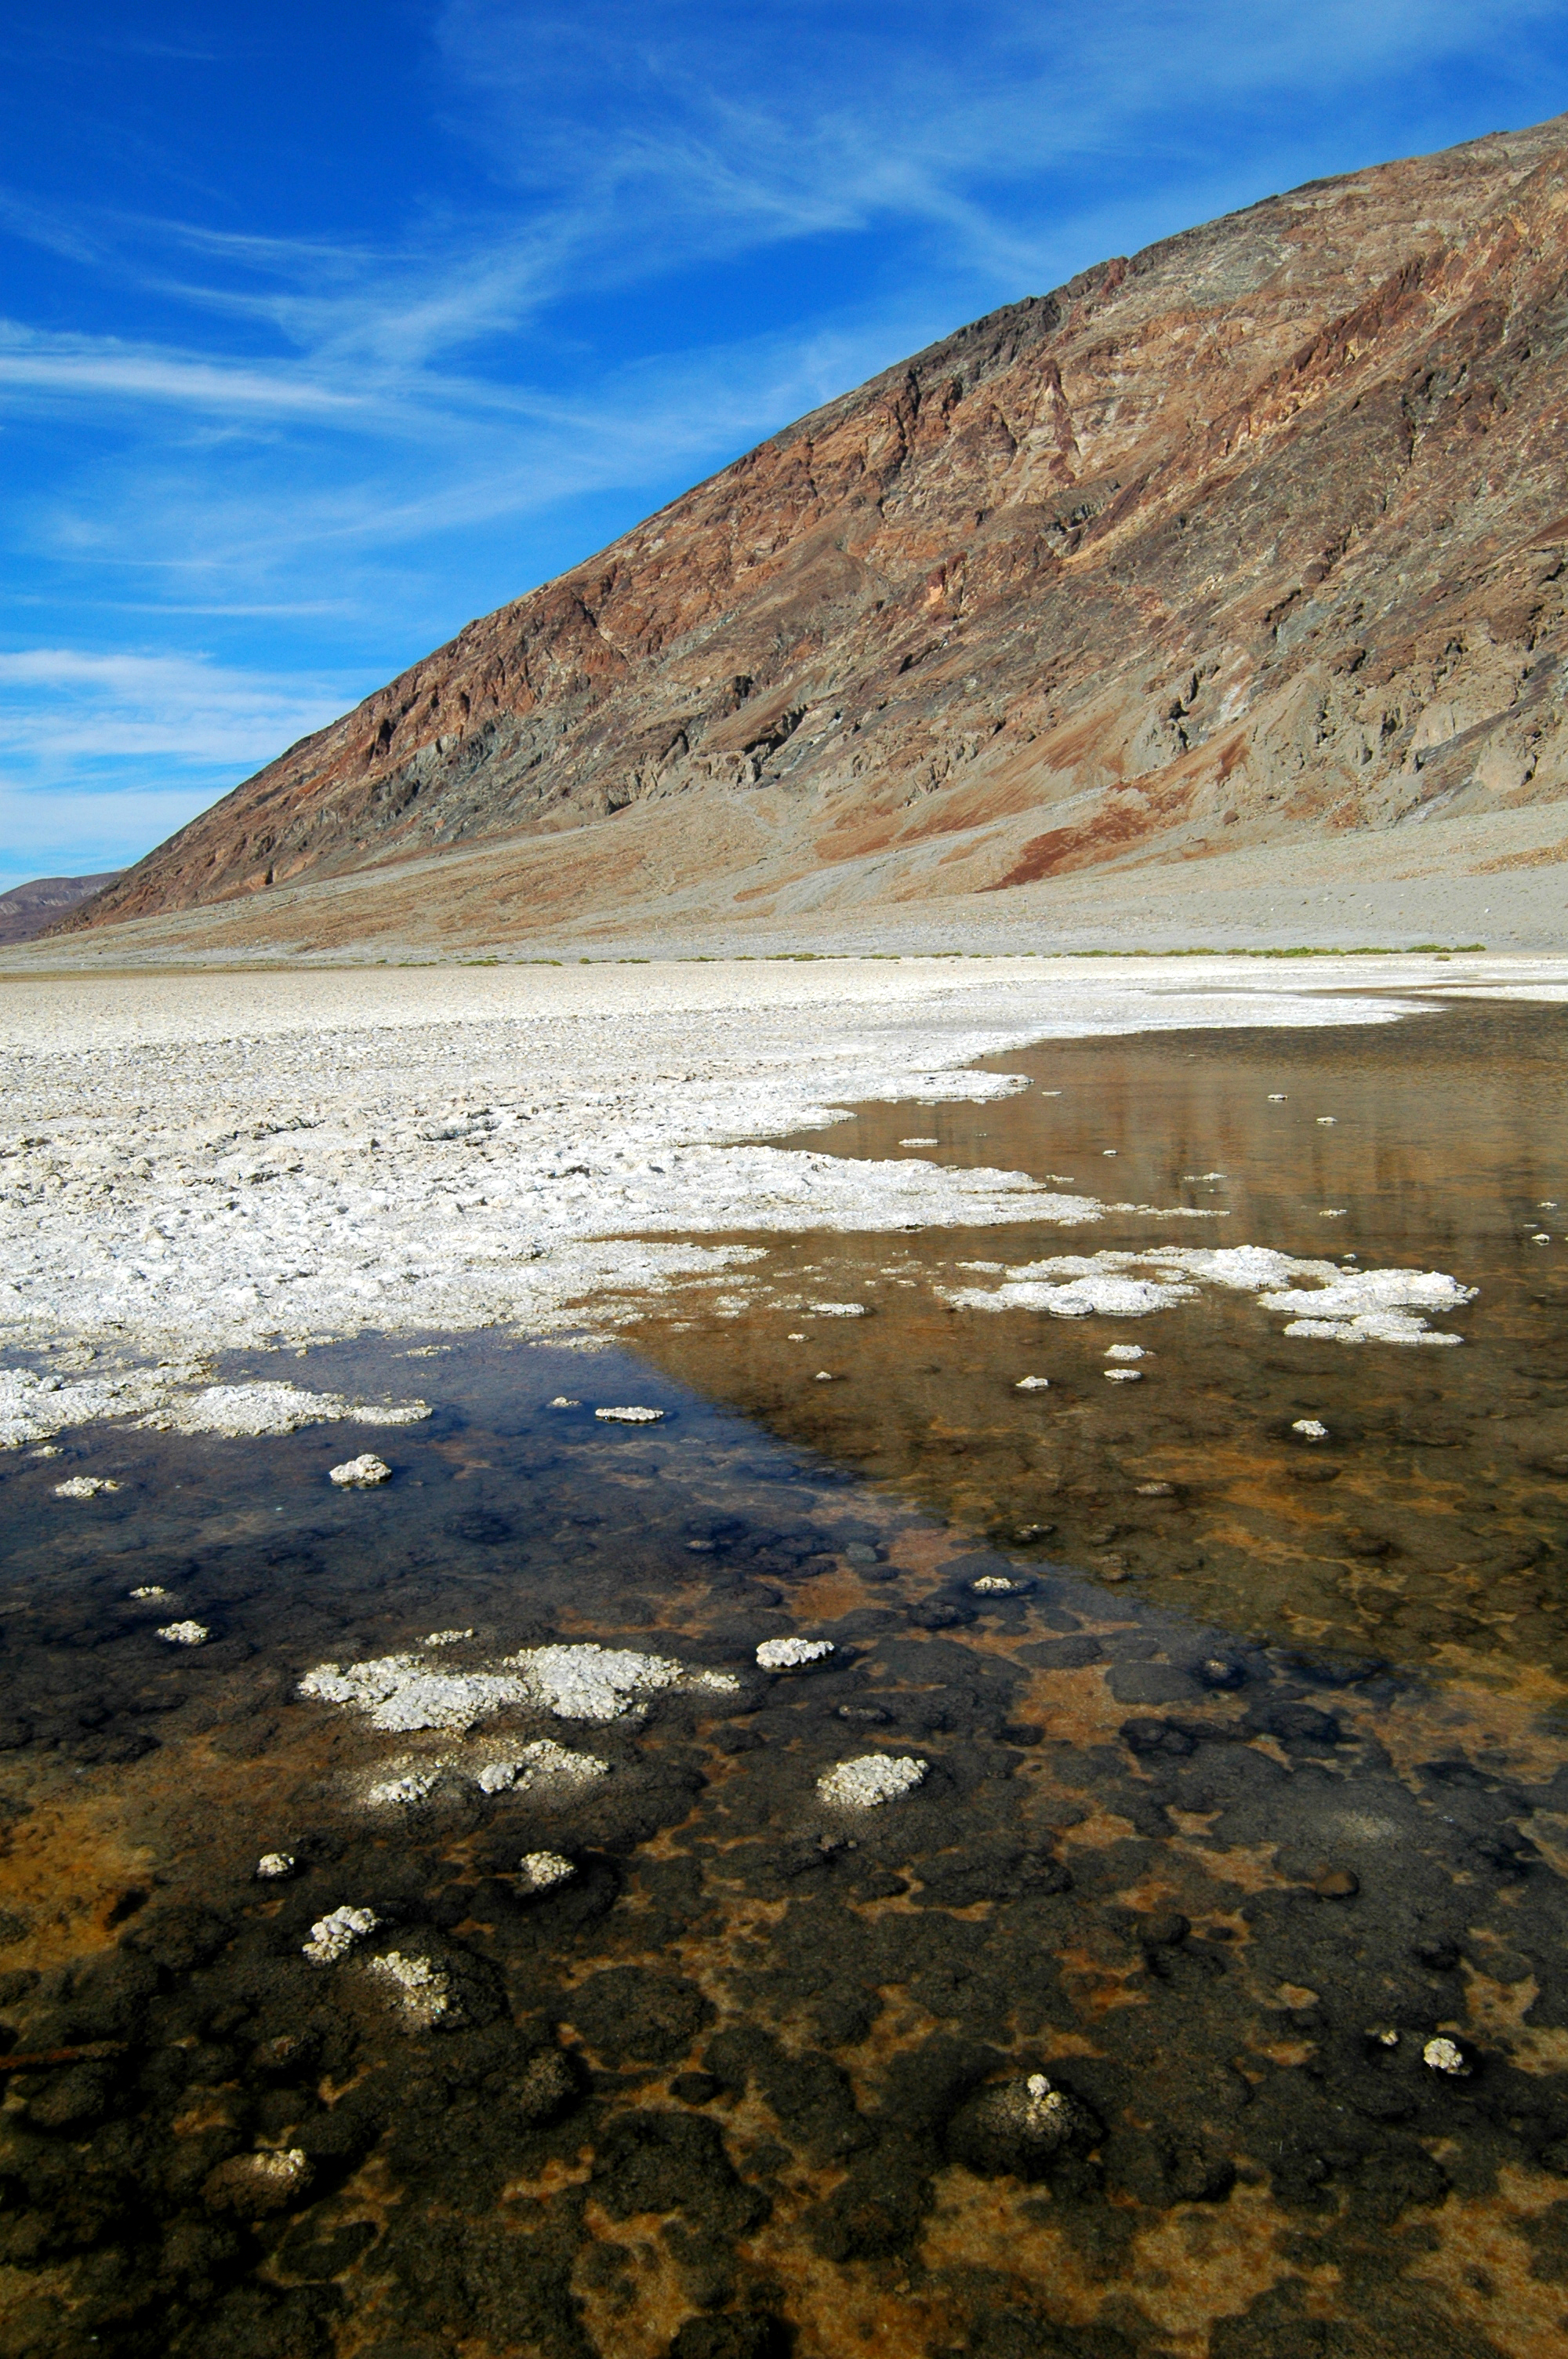 Badwater 282 feet below Sea Level